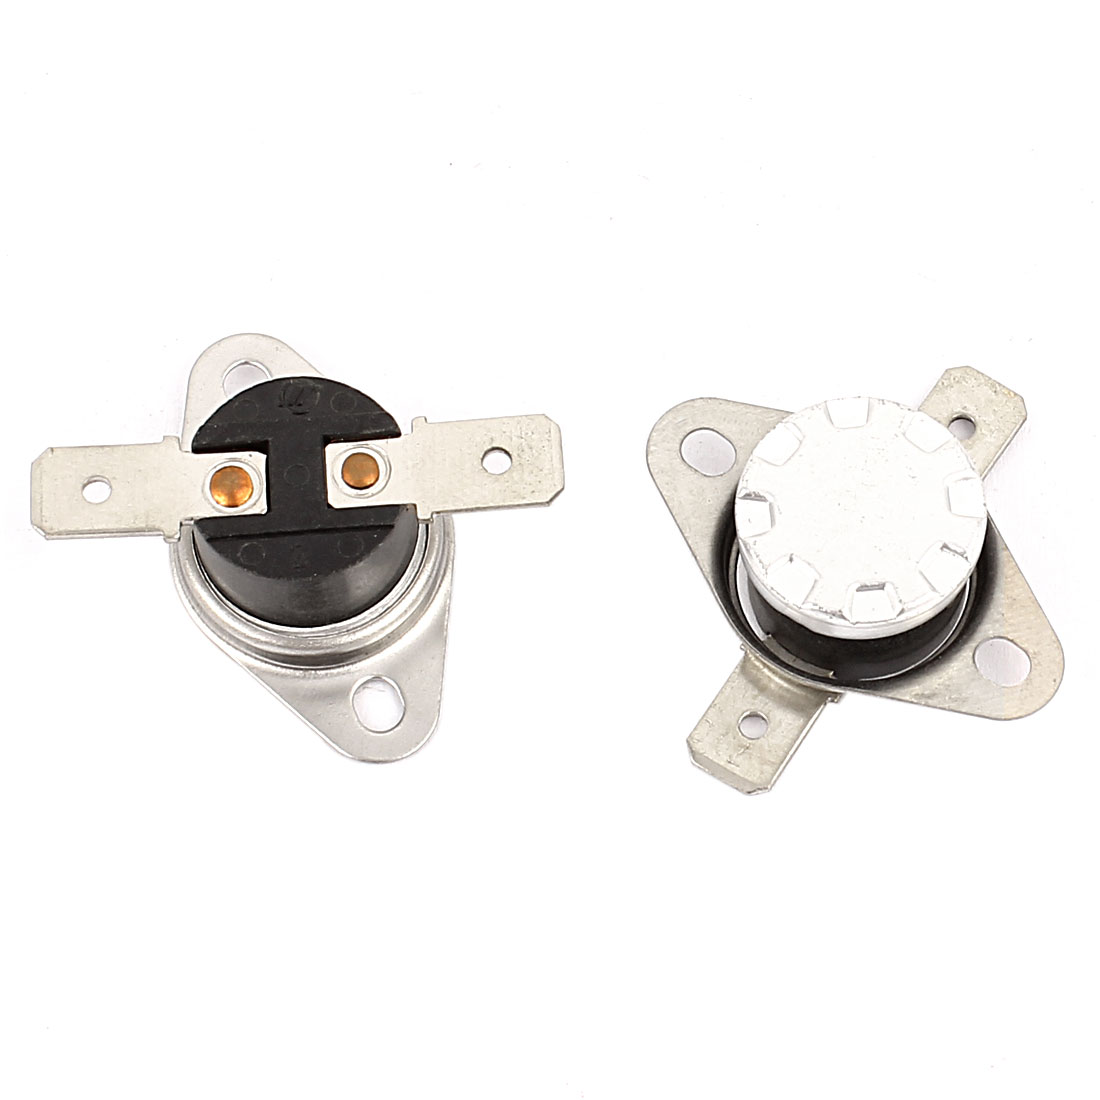 2 Pcs KSD301 Temperature Control Switch Thermostats 250VAC 10A 70 Celsius N.C.